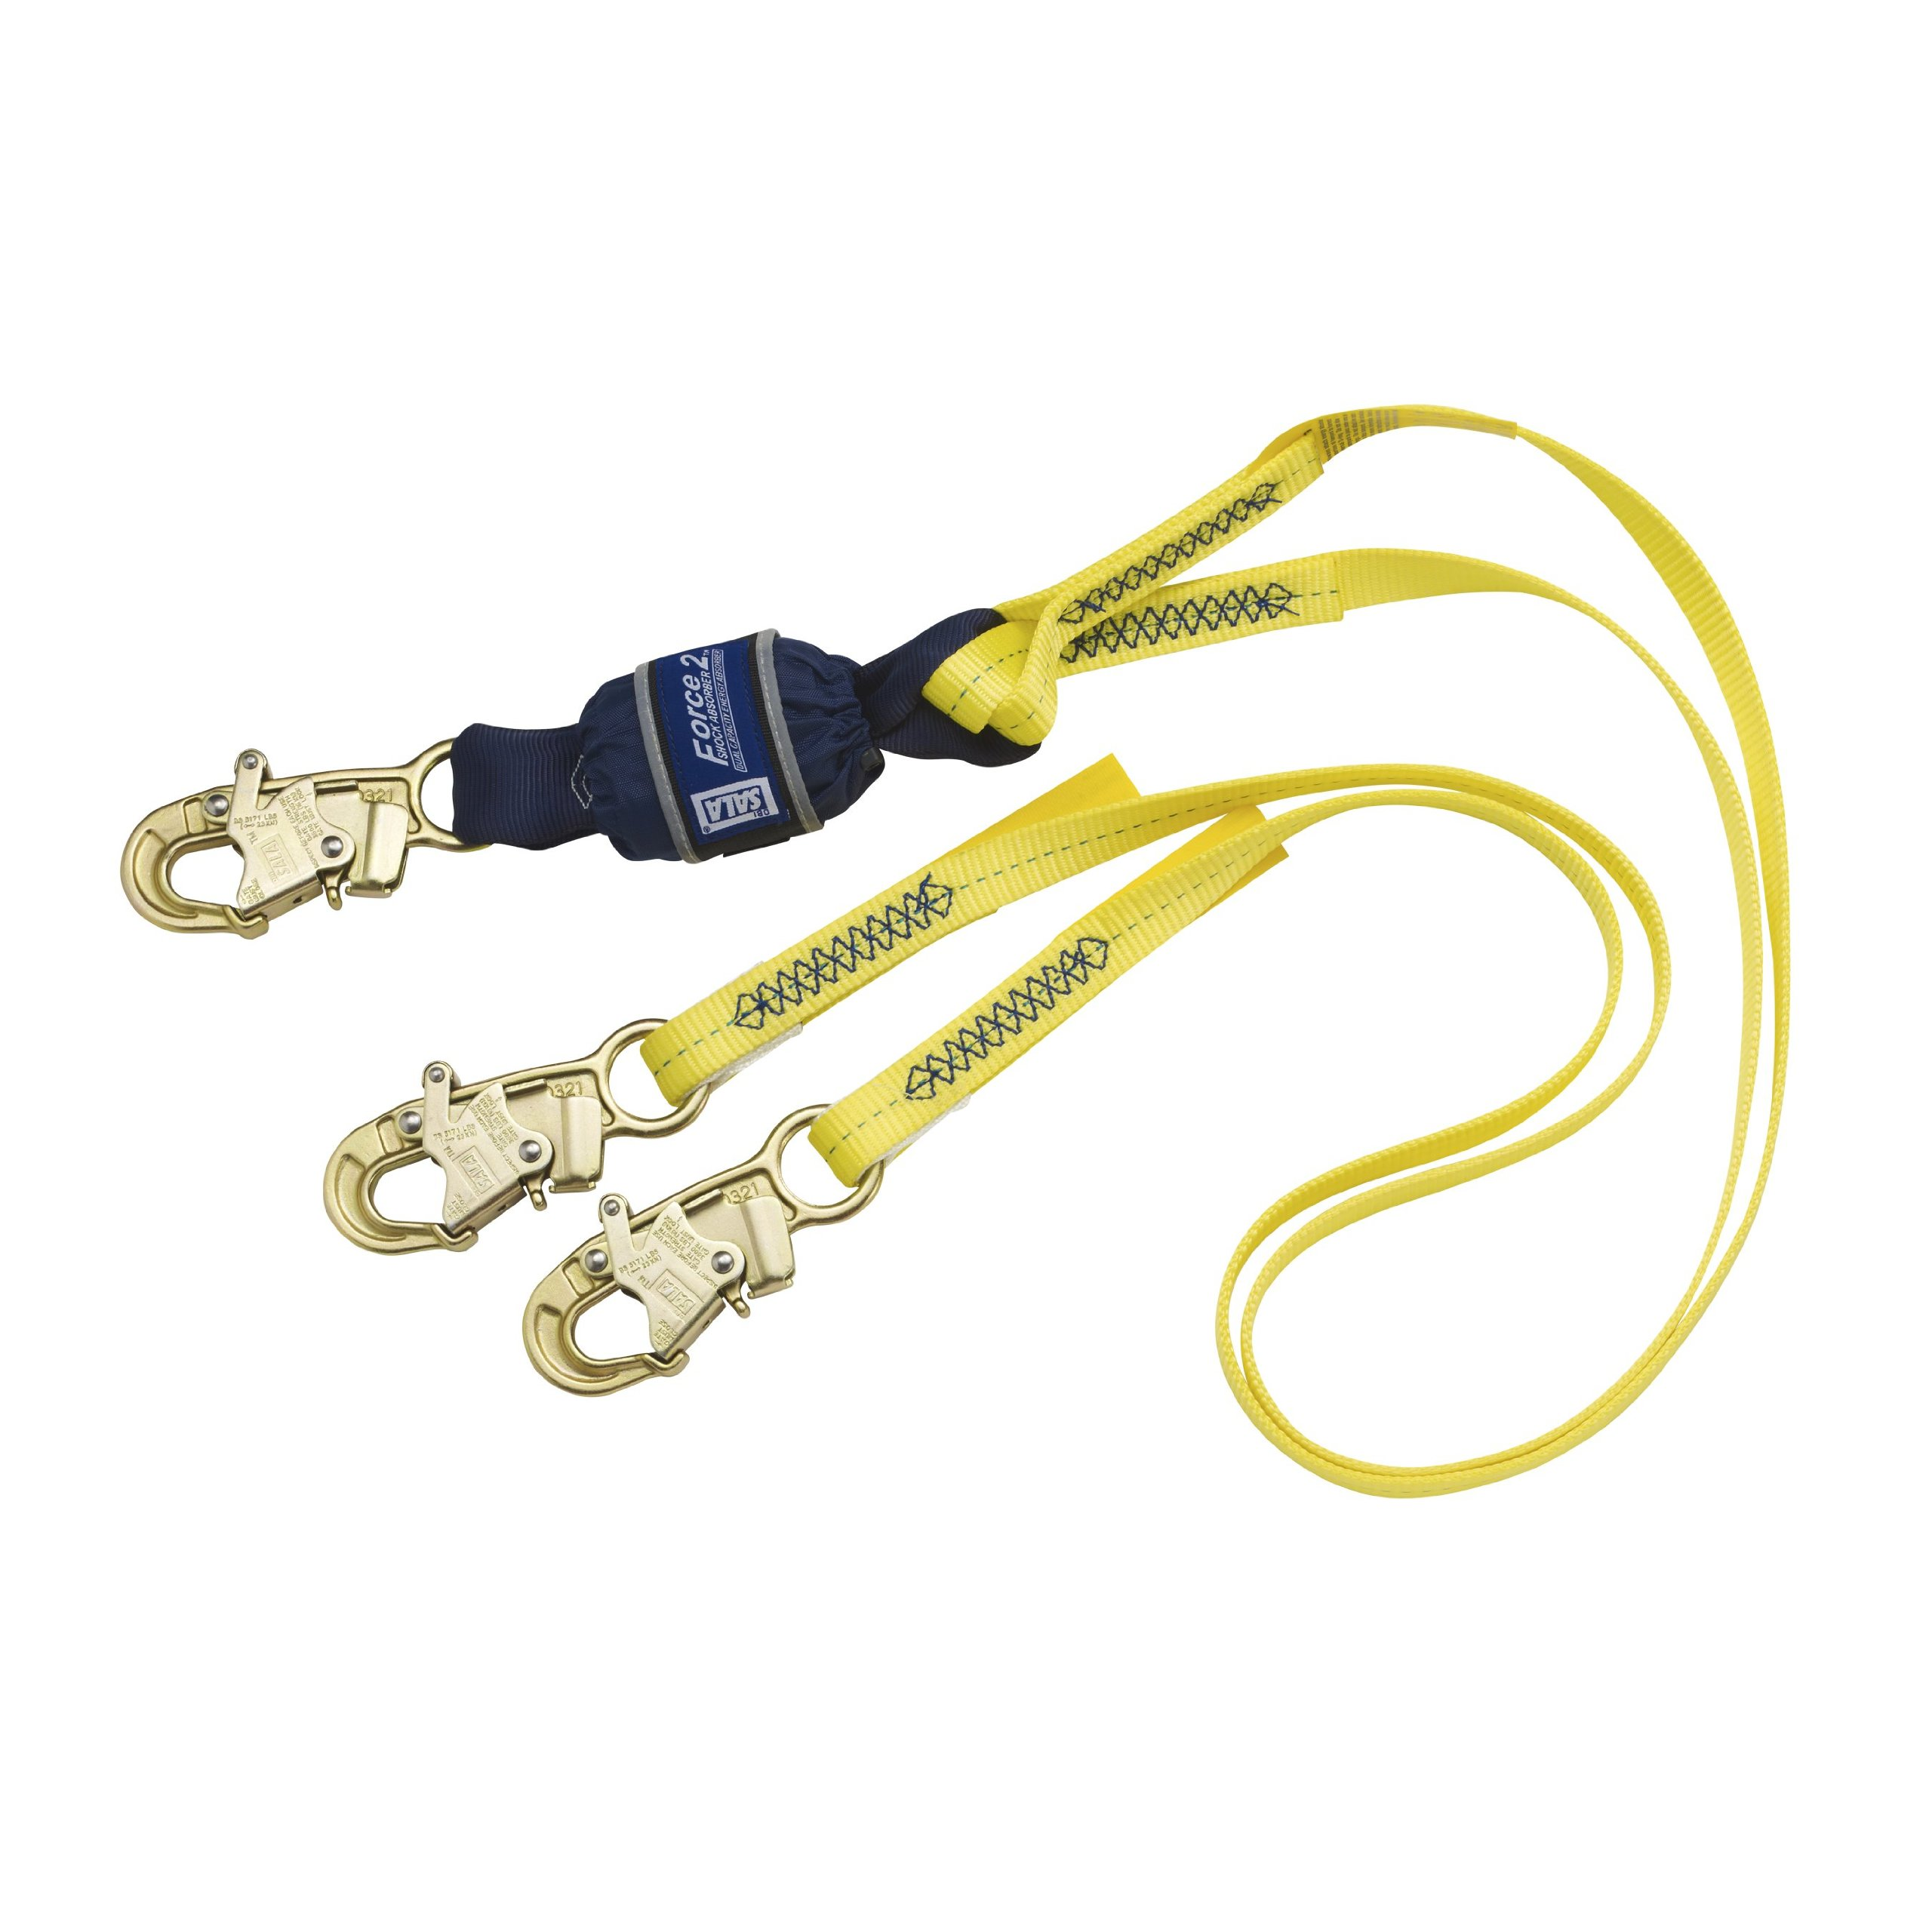 3M DBI-SALA Force2 1246161 Force 2 Shock Absorbing Lanyard, 6', with Snap Hooks At Each End, Yellow/Navy